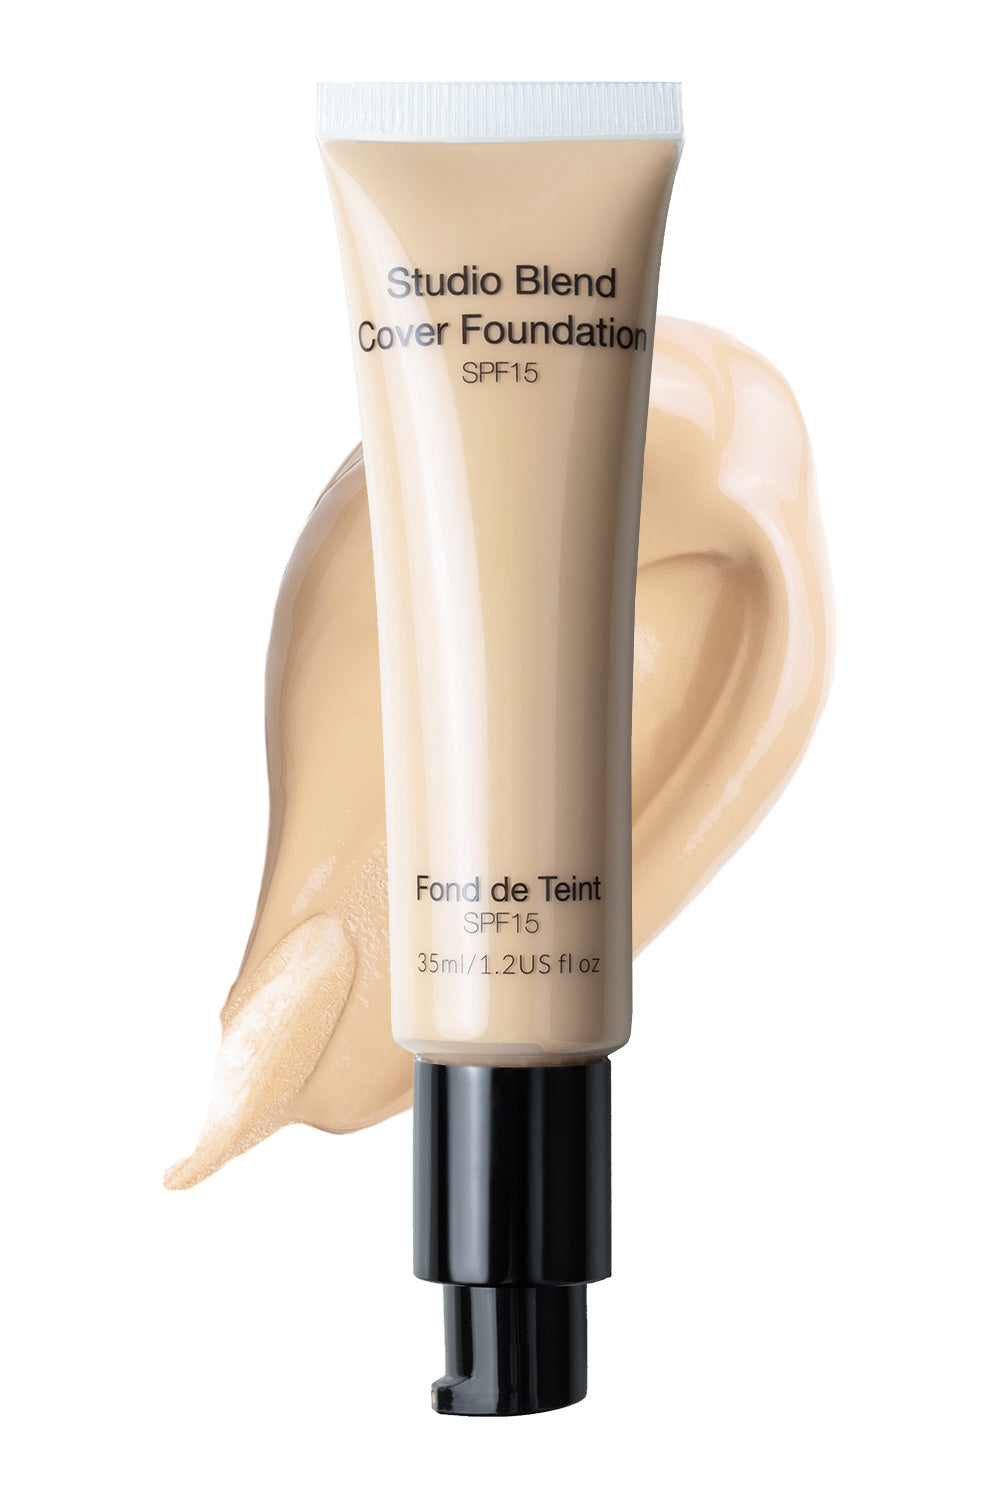 100 - Studio Blend Cover Foundation